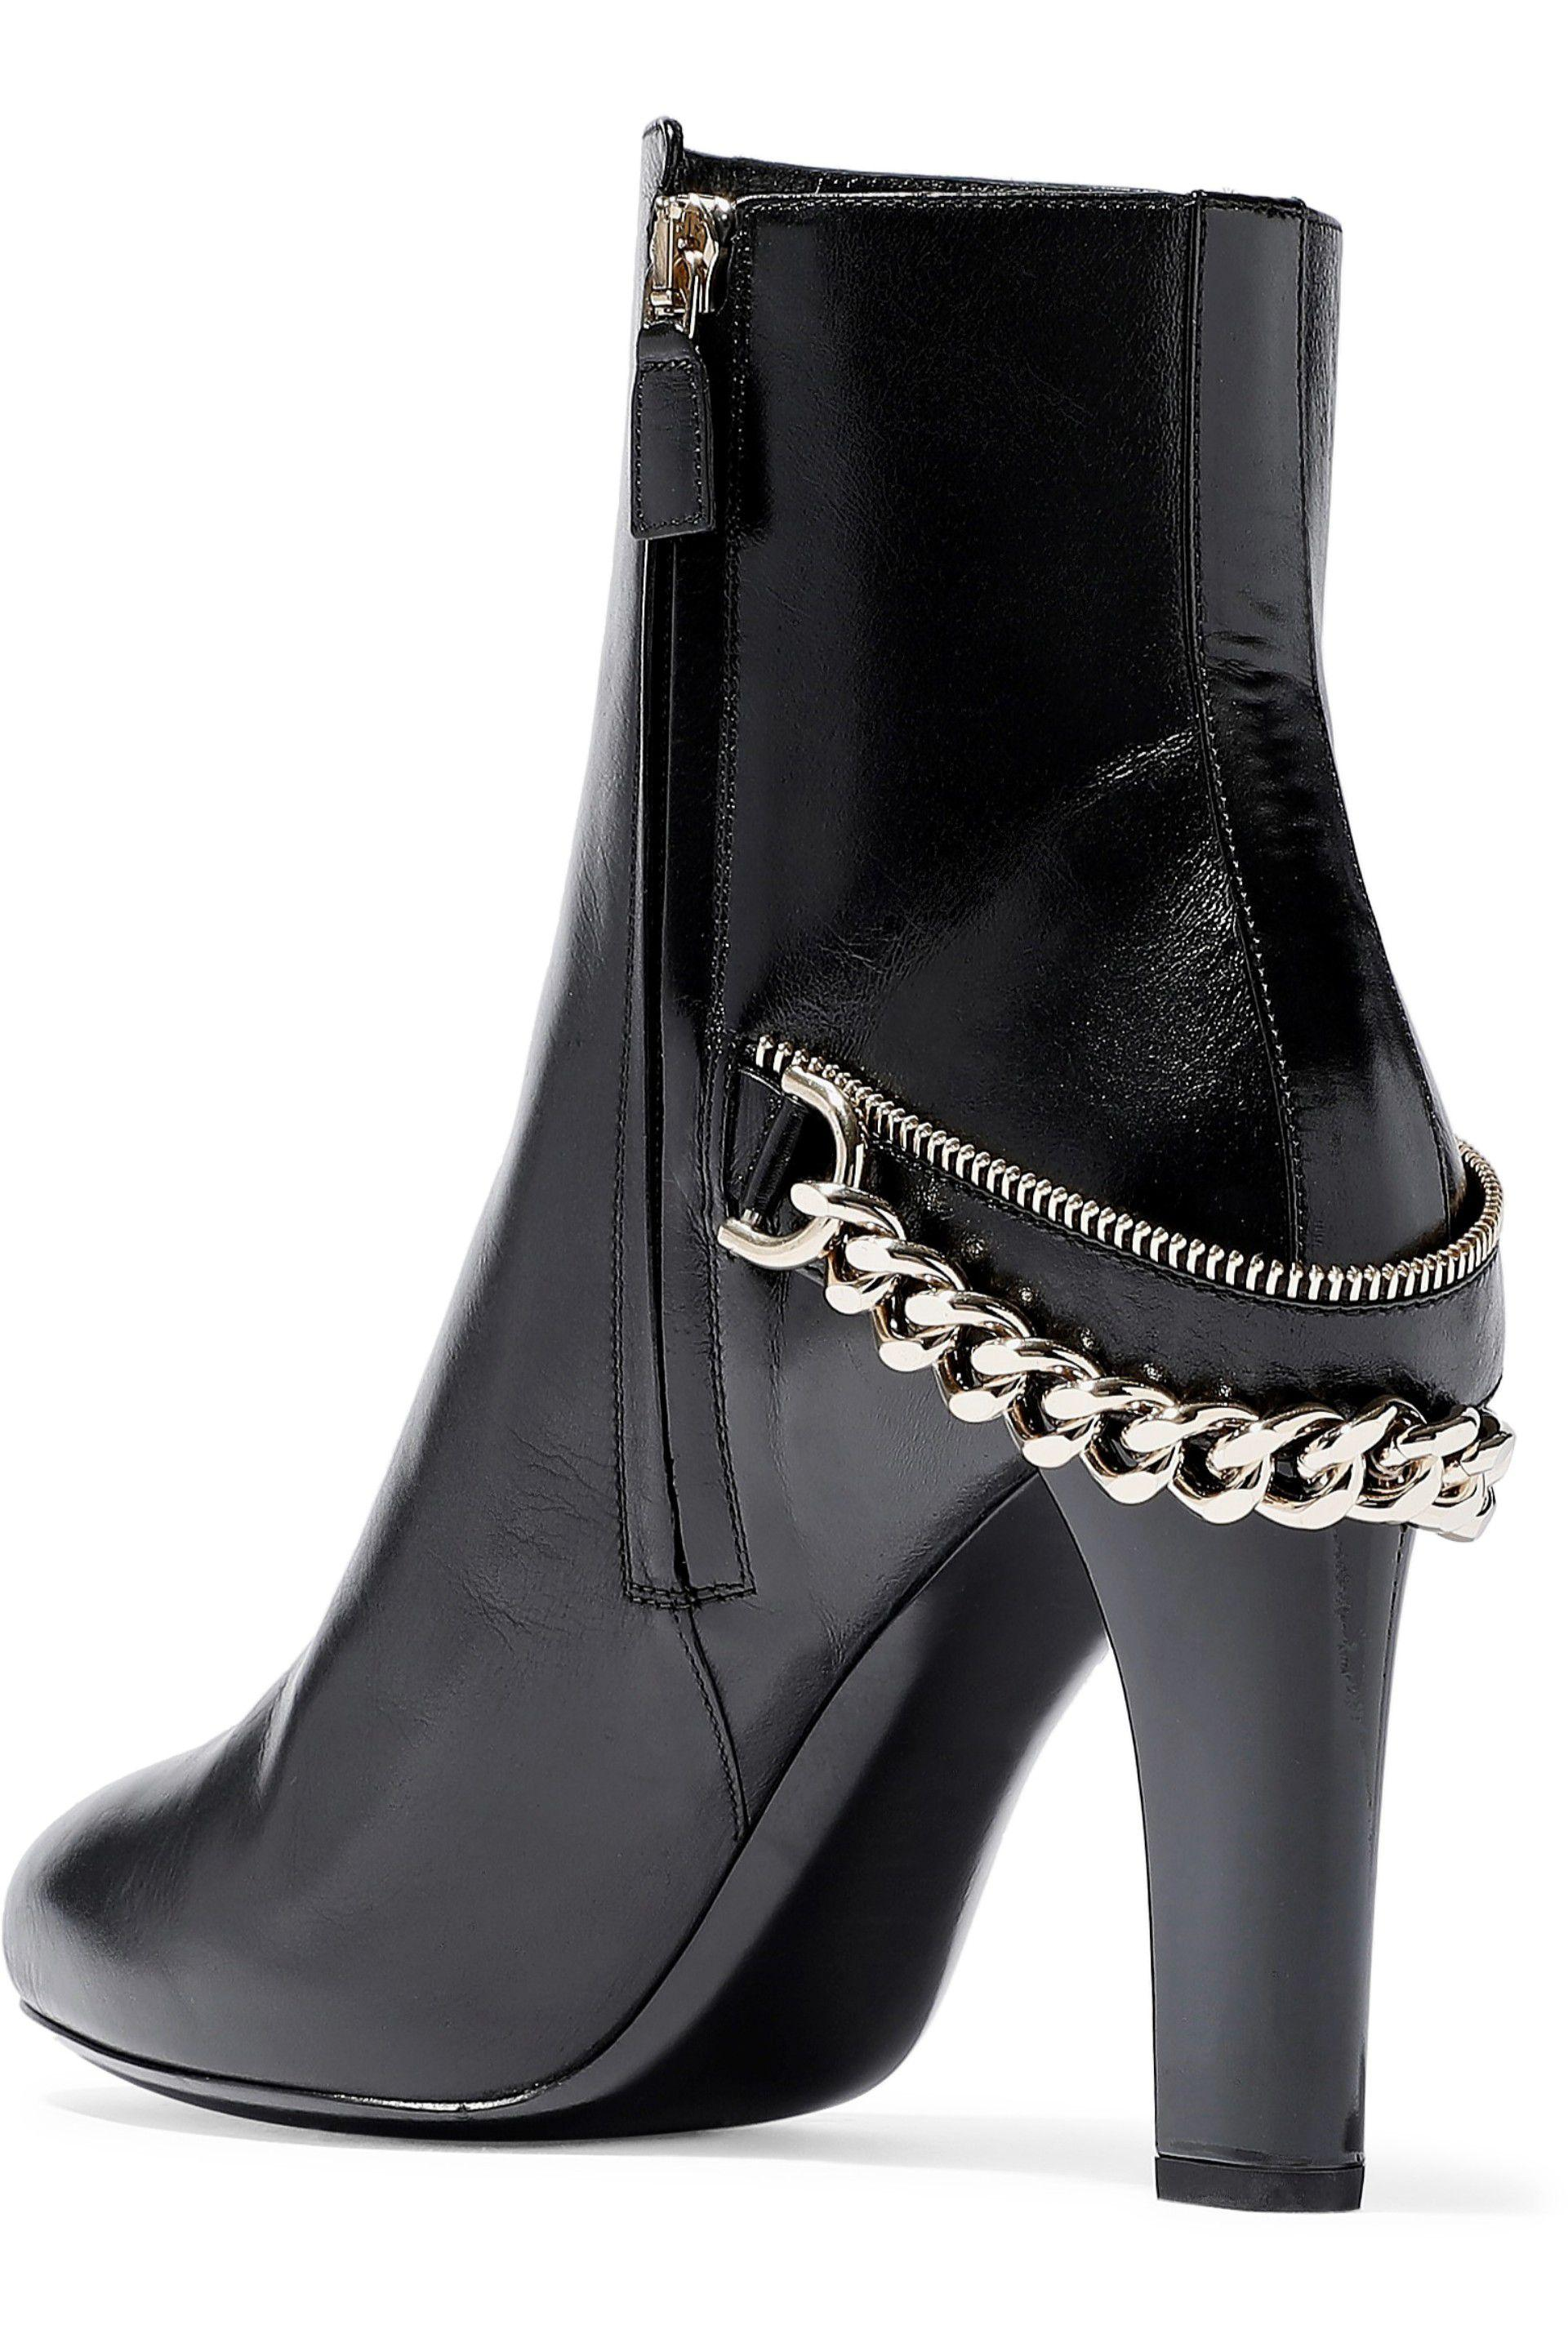 3ed369ef24e Lyst - Lanvin Woman Chain-trimmed Leather Ankle Boots Black in Black